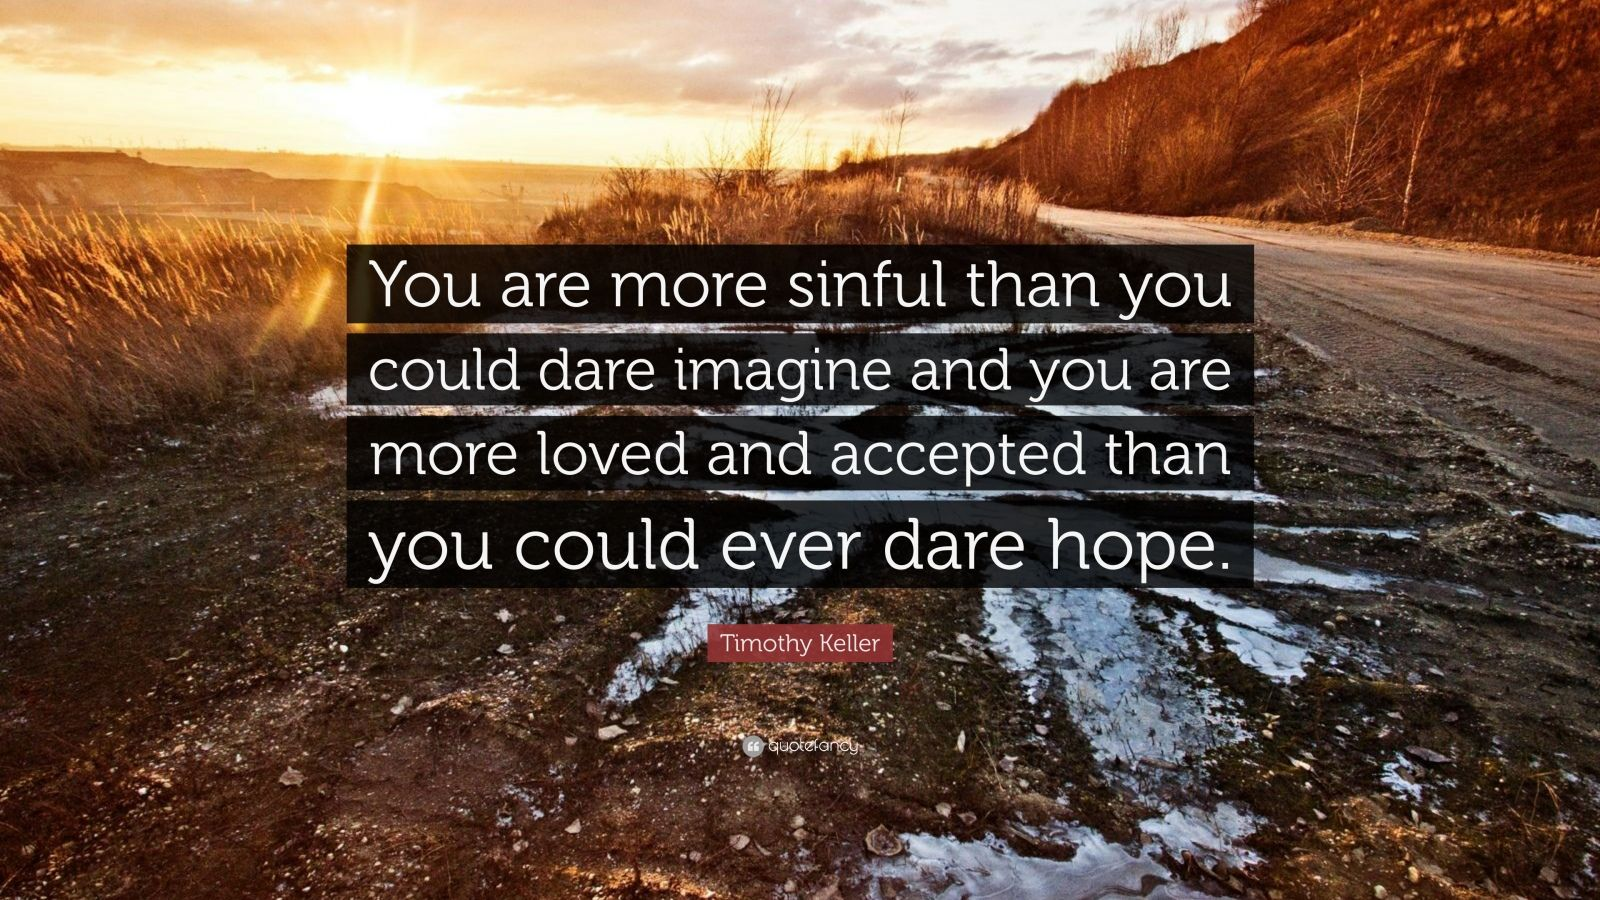 """Timothy Keller Quote: """"You are more sinful than you could dare imagine and you are more loved and accepted than you could ever dare hope."""""""